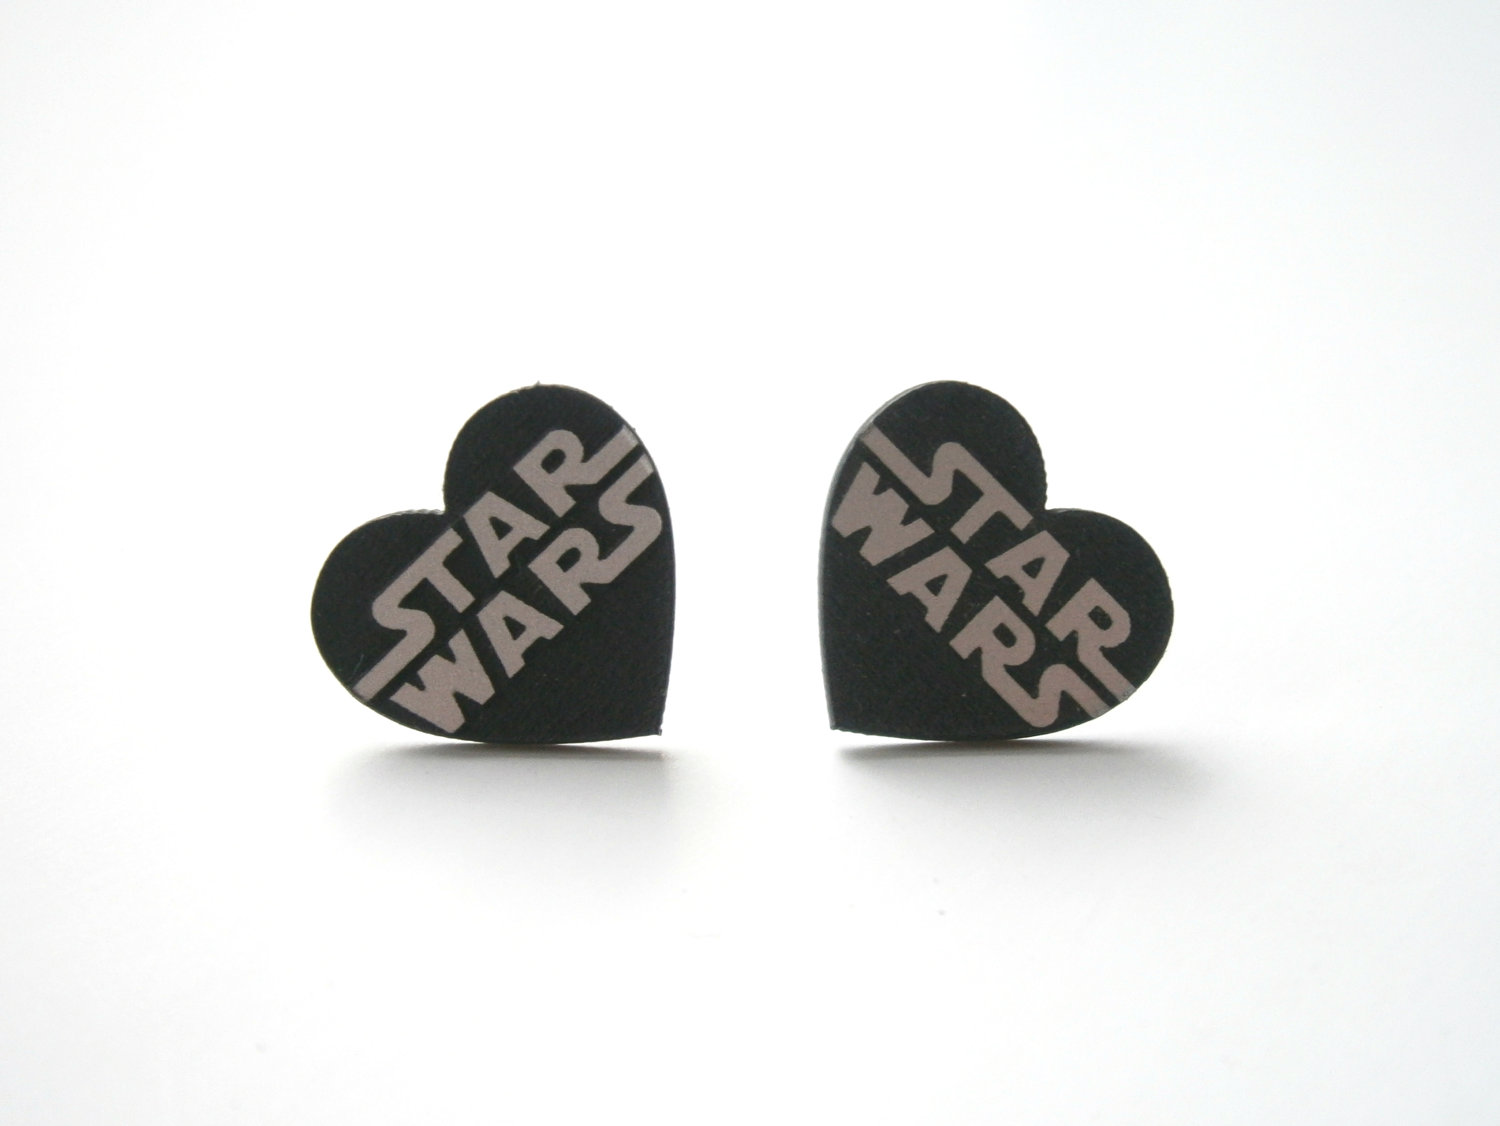 Star Wars Stud Earrings Laser Cut Heart Stud Engraved